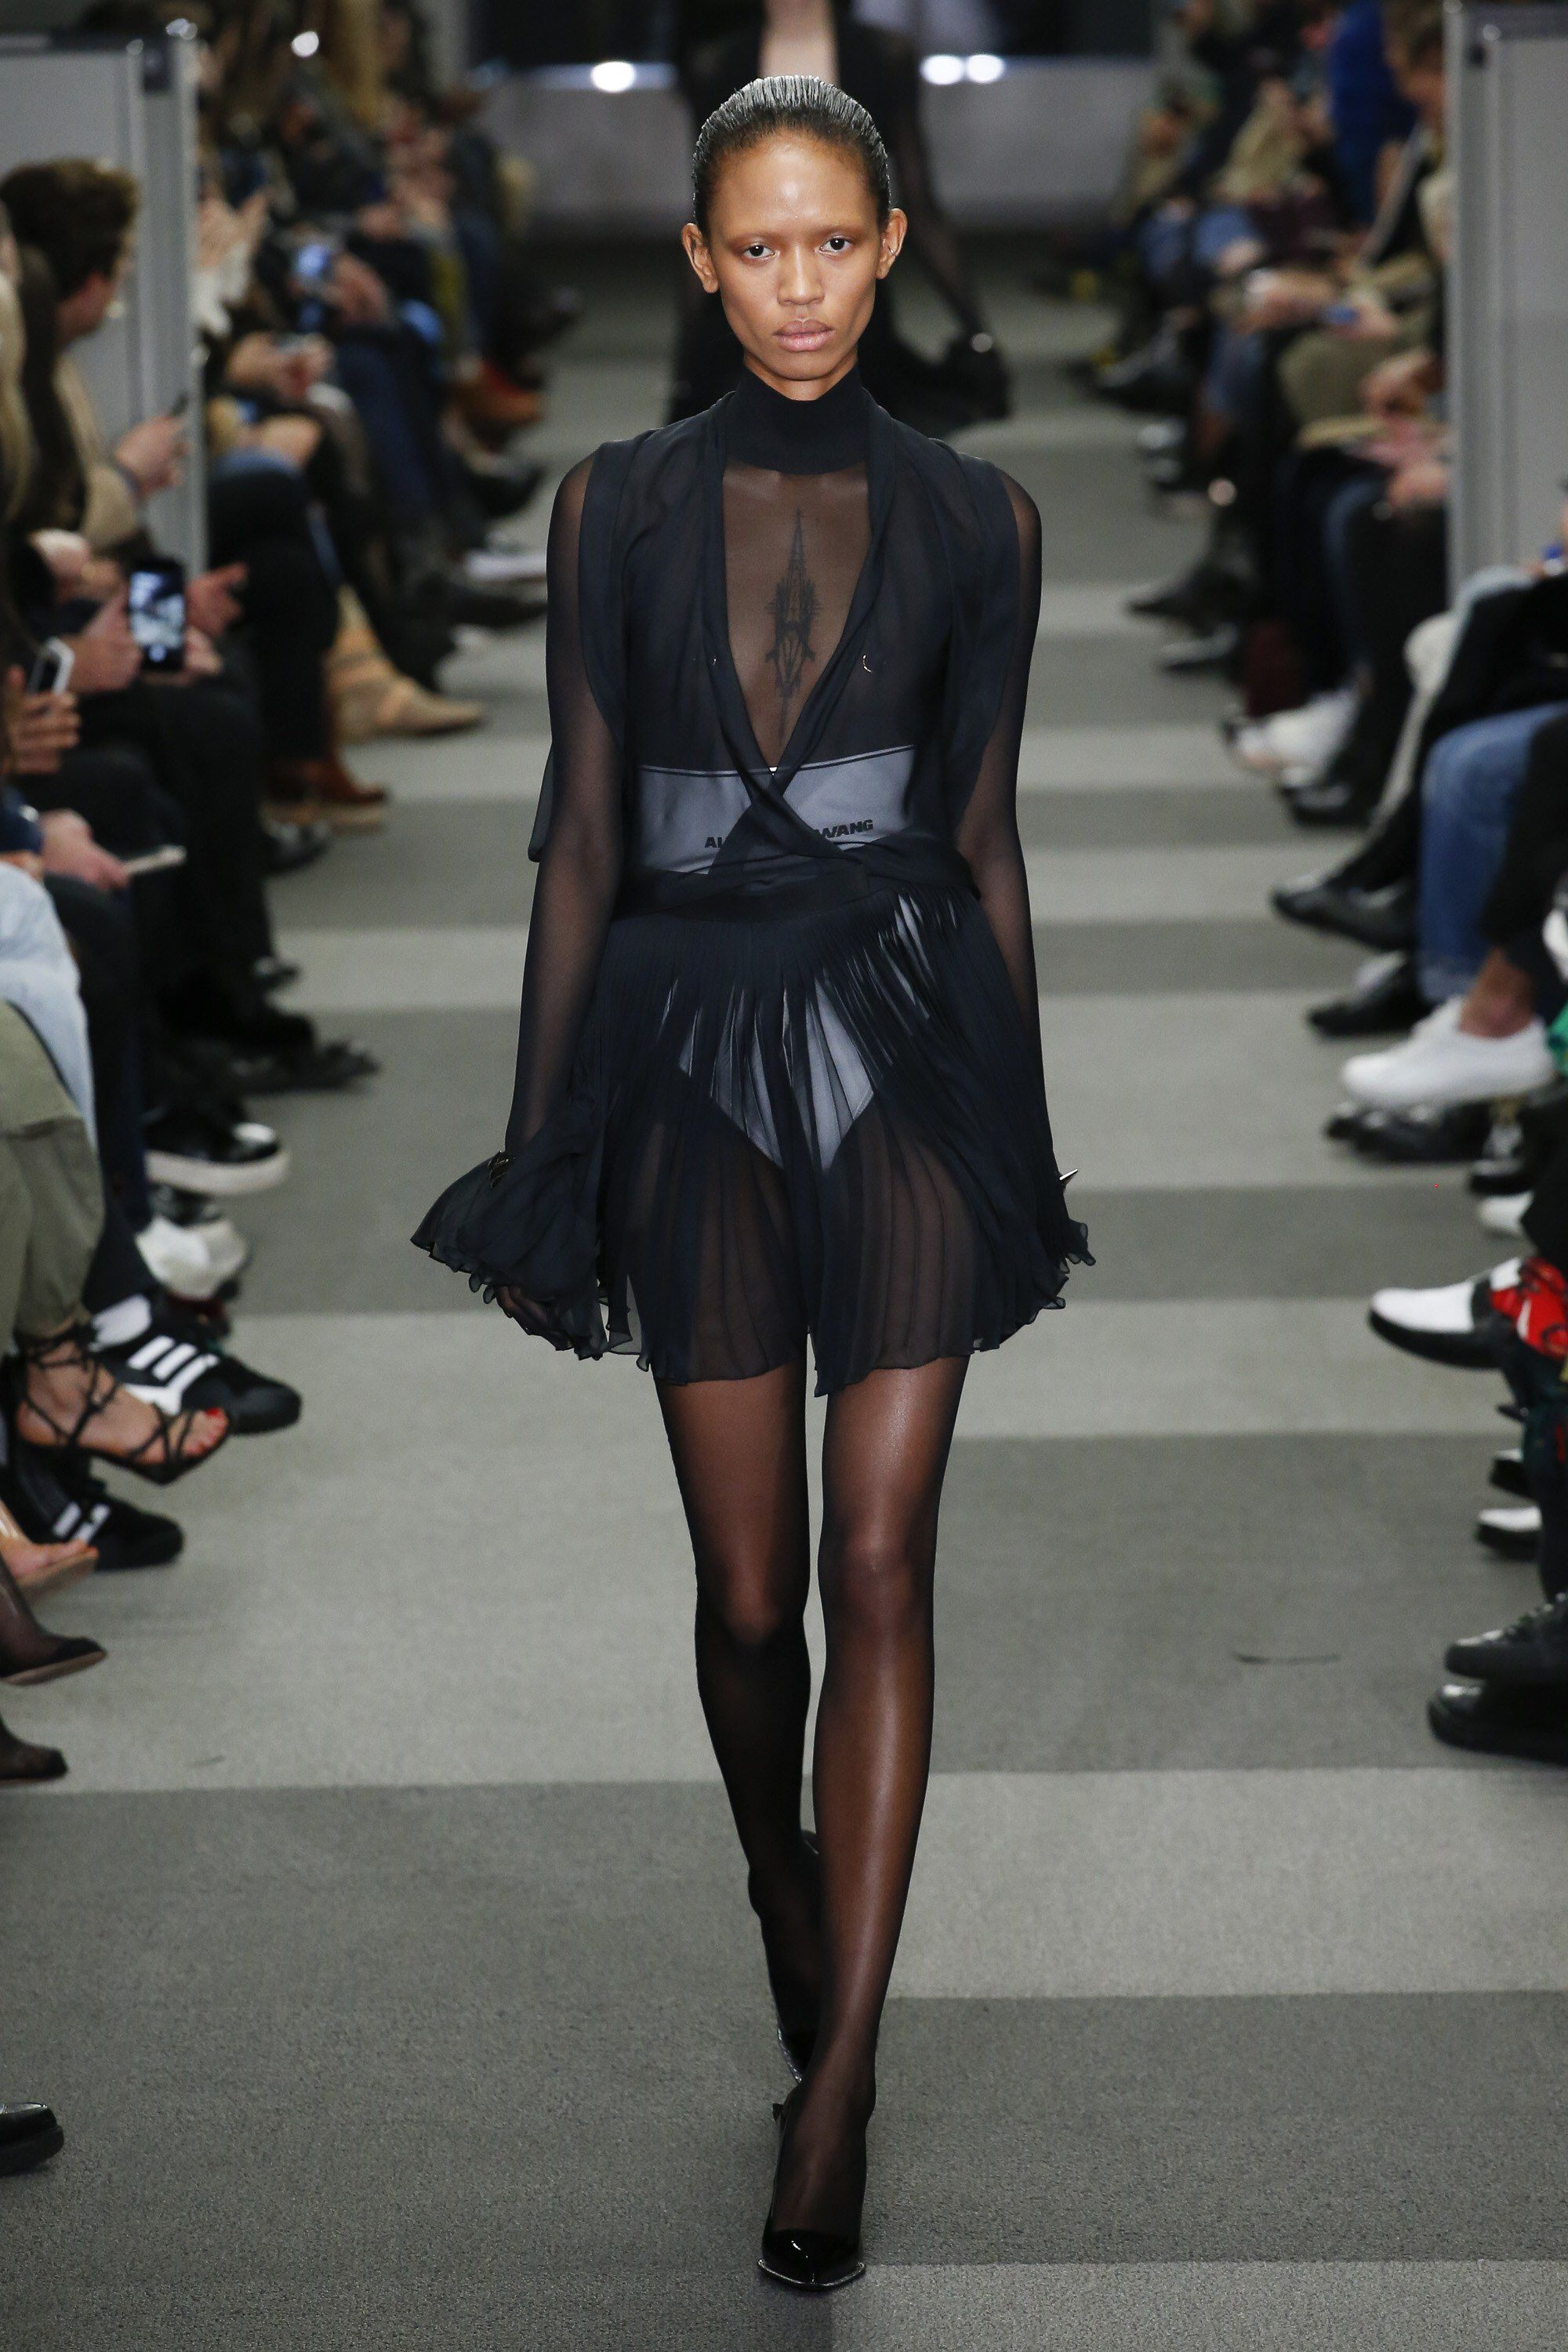 c45ce89014a3 Alexander Wang Fall 2018 Ready-to-Wear Fashion Show Collection ...